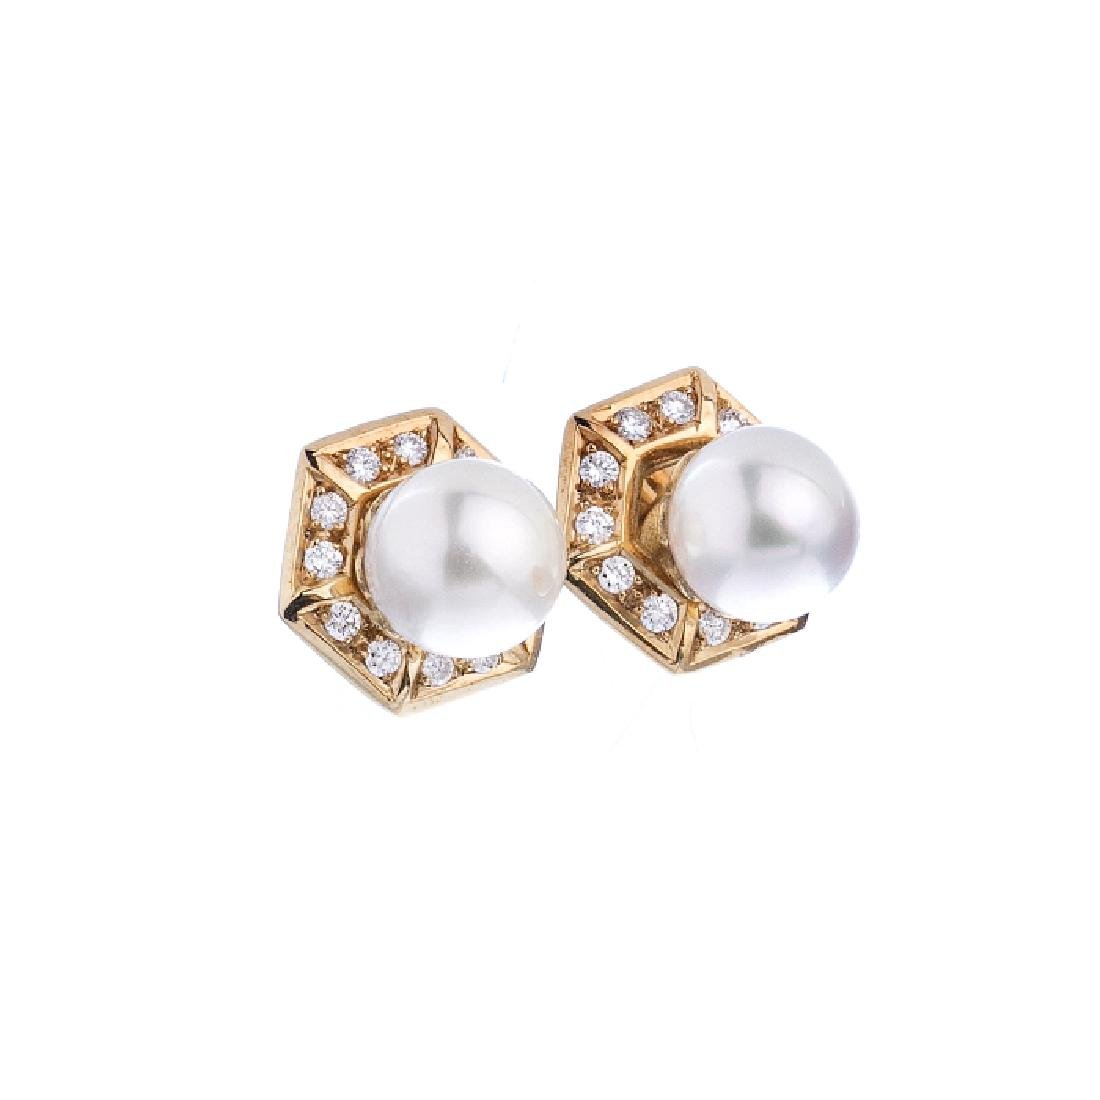 Gold earrings with brilliants and cultured pearls